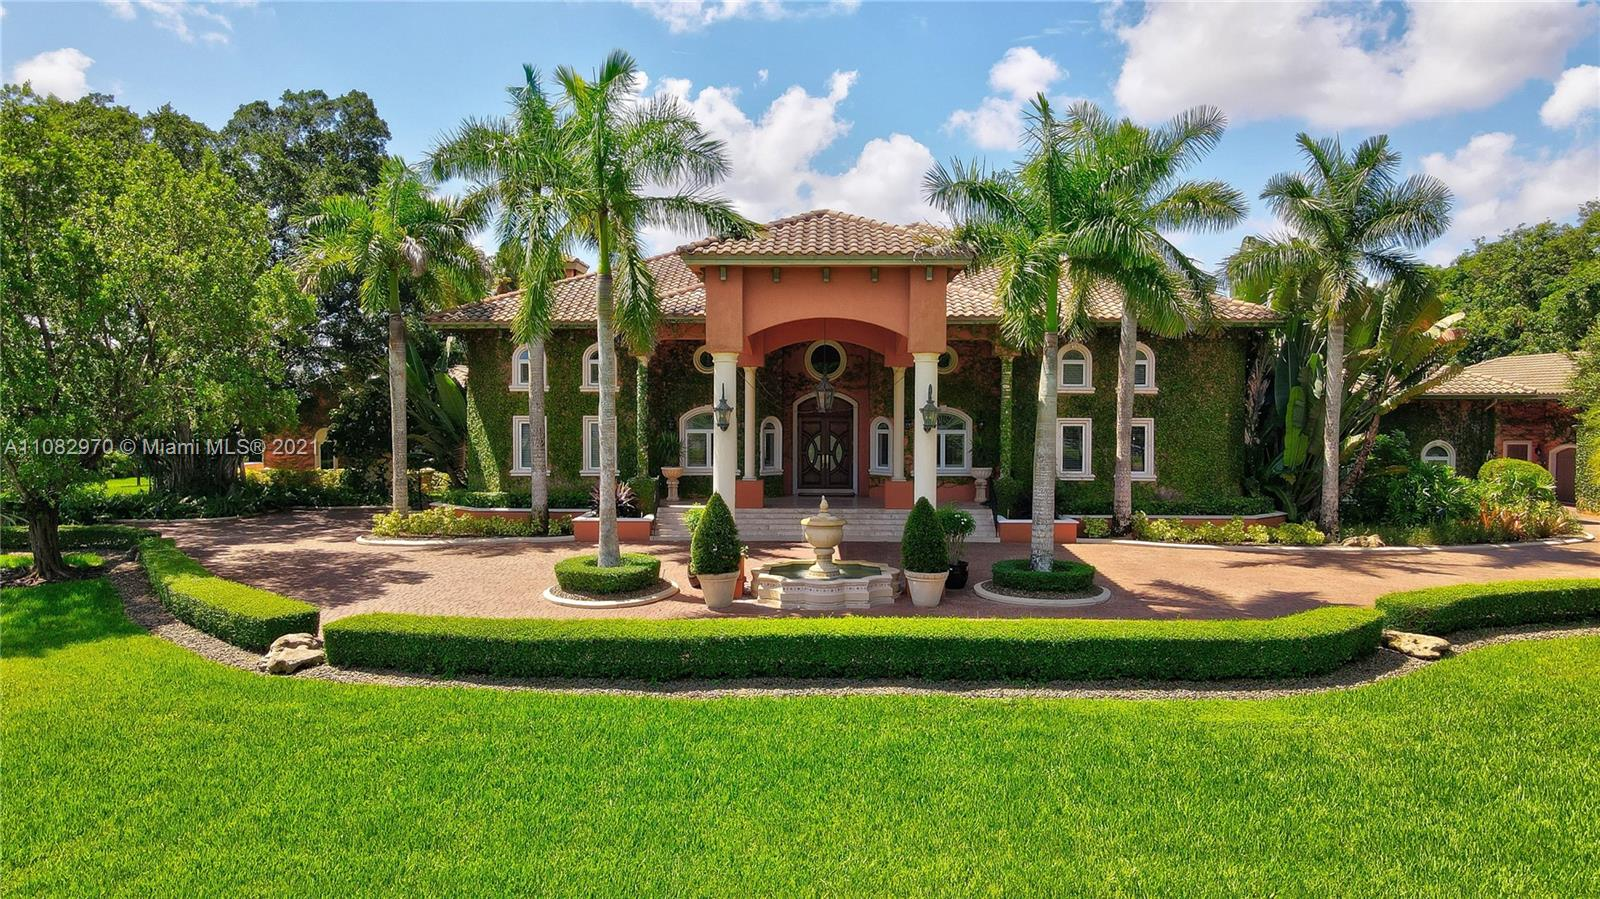 Sunshine Ranches, 13450 Mustang Trl, Southwest Ranches, Florida 33330